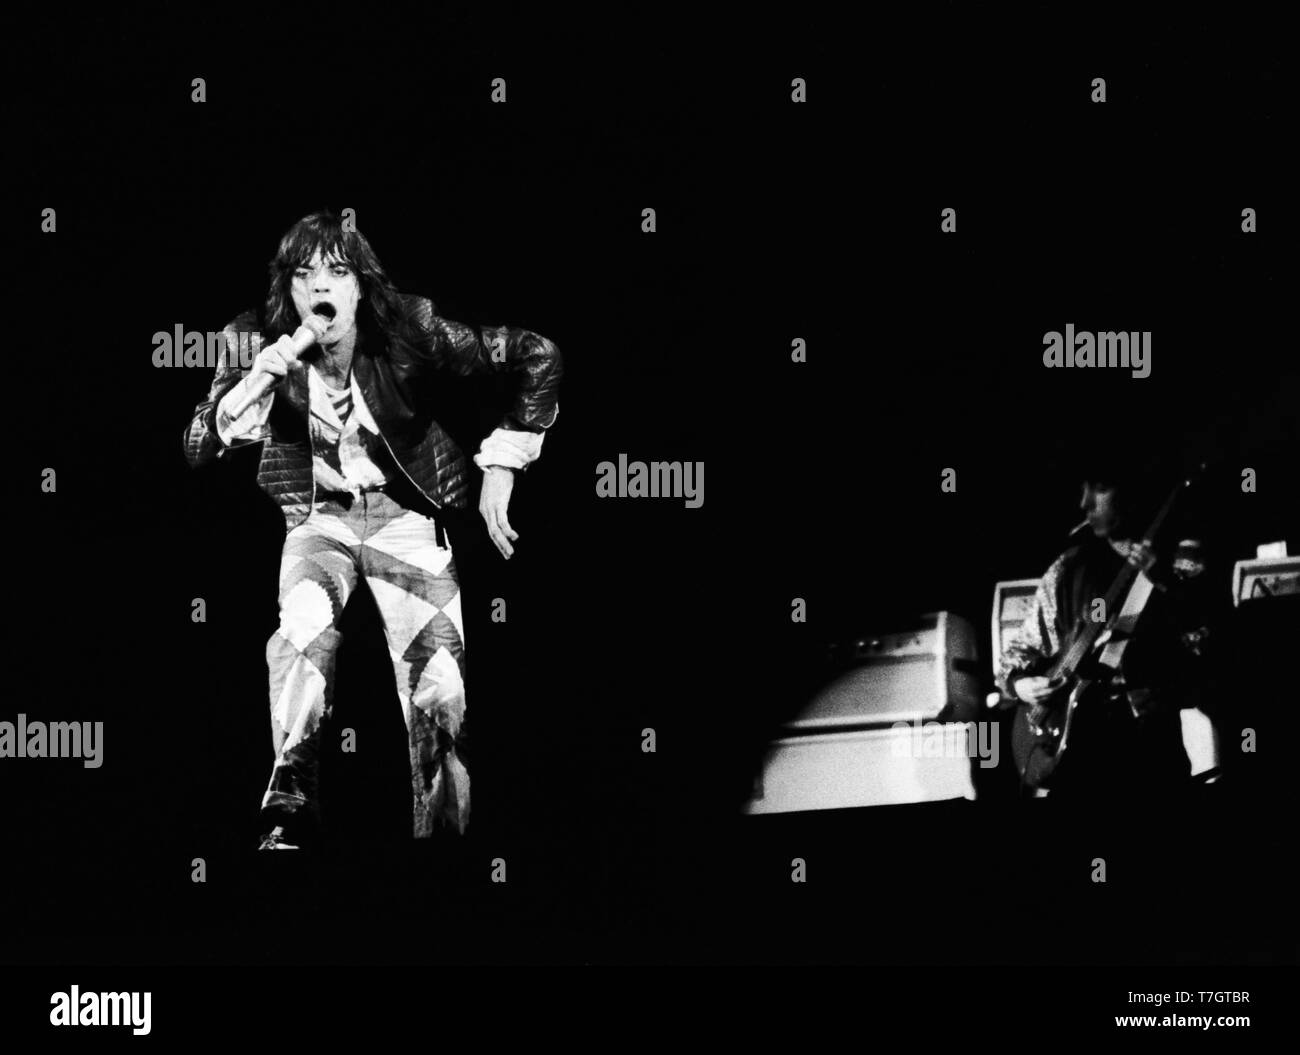 FRANKFURT, GERMANY: Mick Jagger from The Rolling Stones perform live on stage at the Festhalle in Frankfurt, Germany on April 28 1976 as part of their European tour (Photo by Gijsbert Hanekroot) Stock Photo